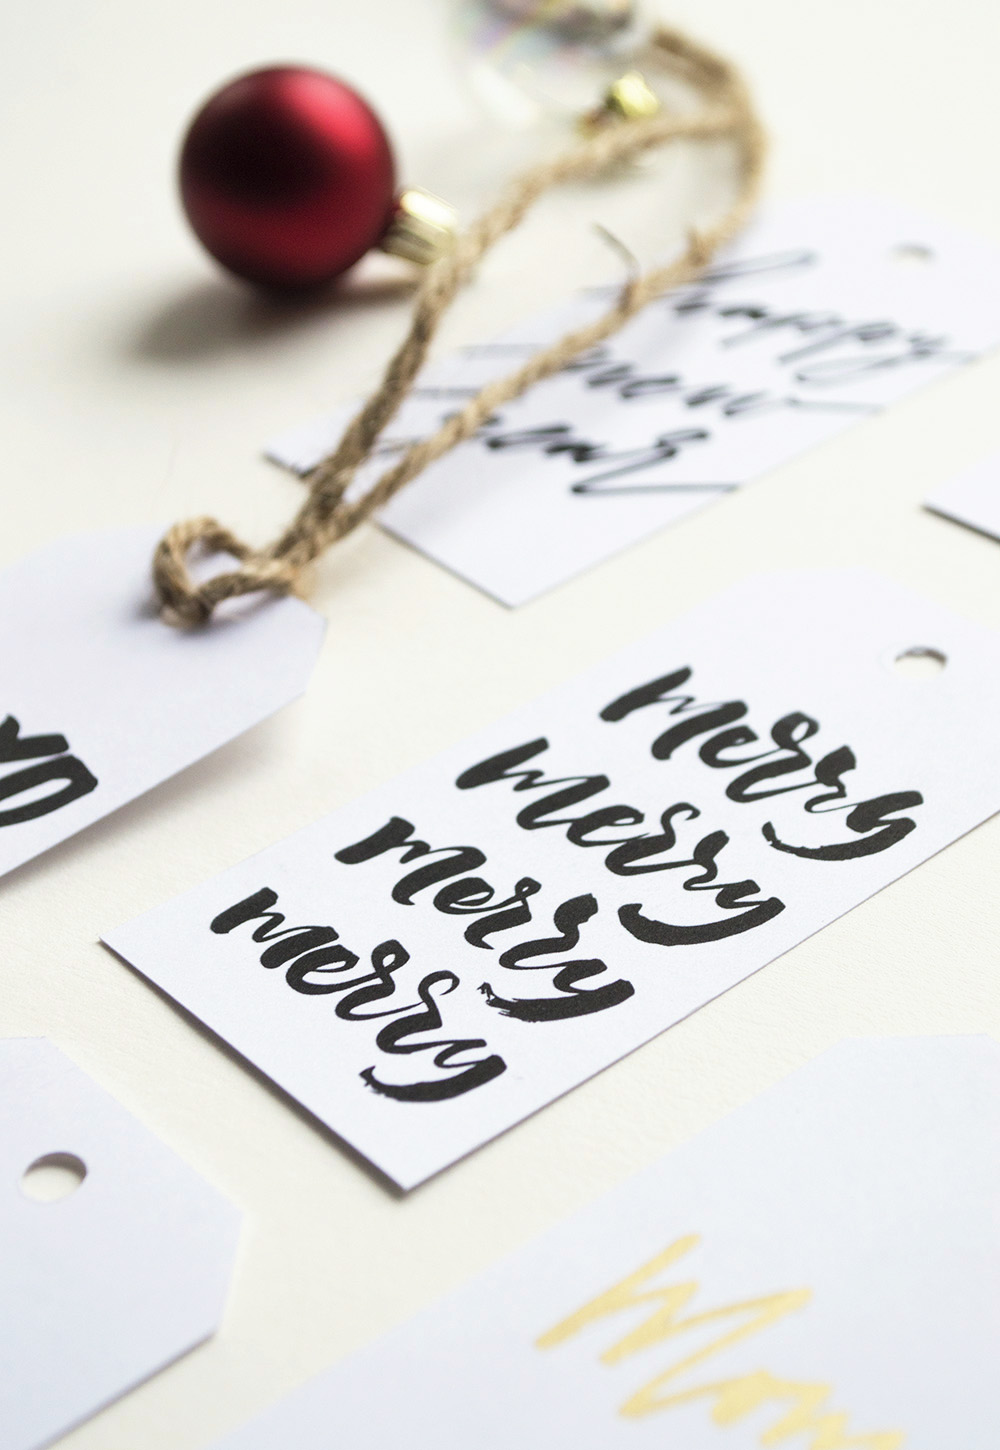 Download free printable Christmas Tags by Type and Graphics Lab | For personal use only | © typeandgraphicslab.com